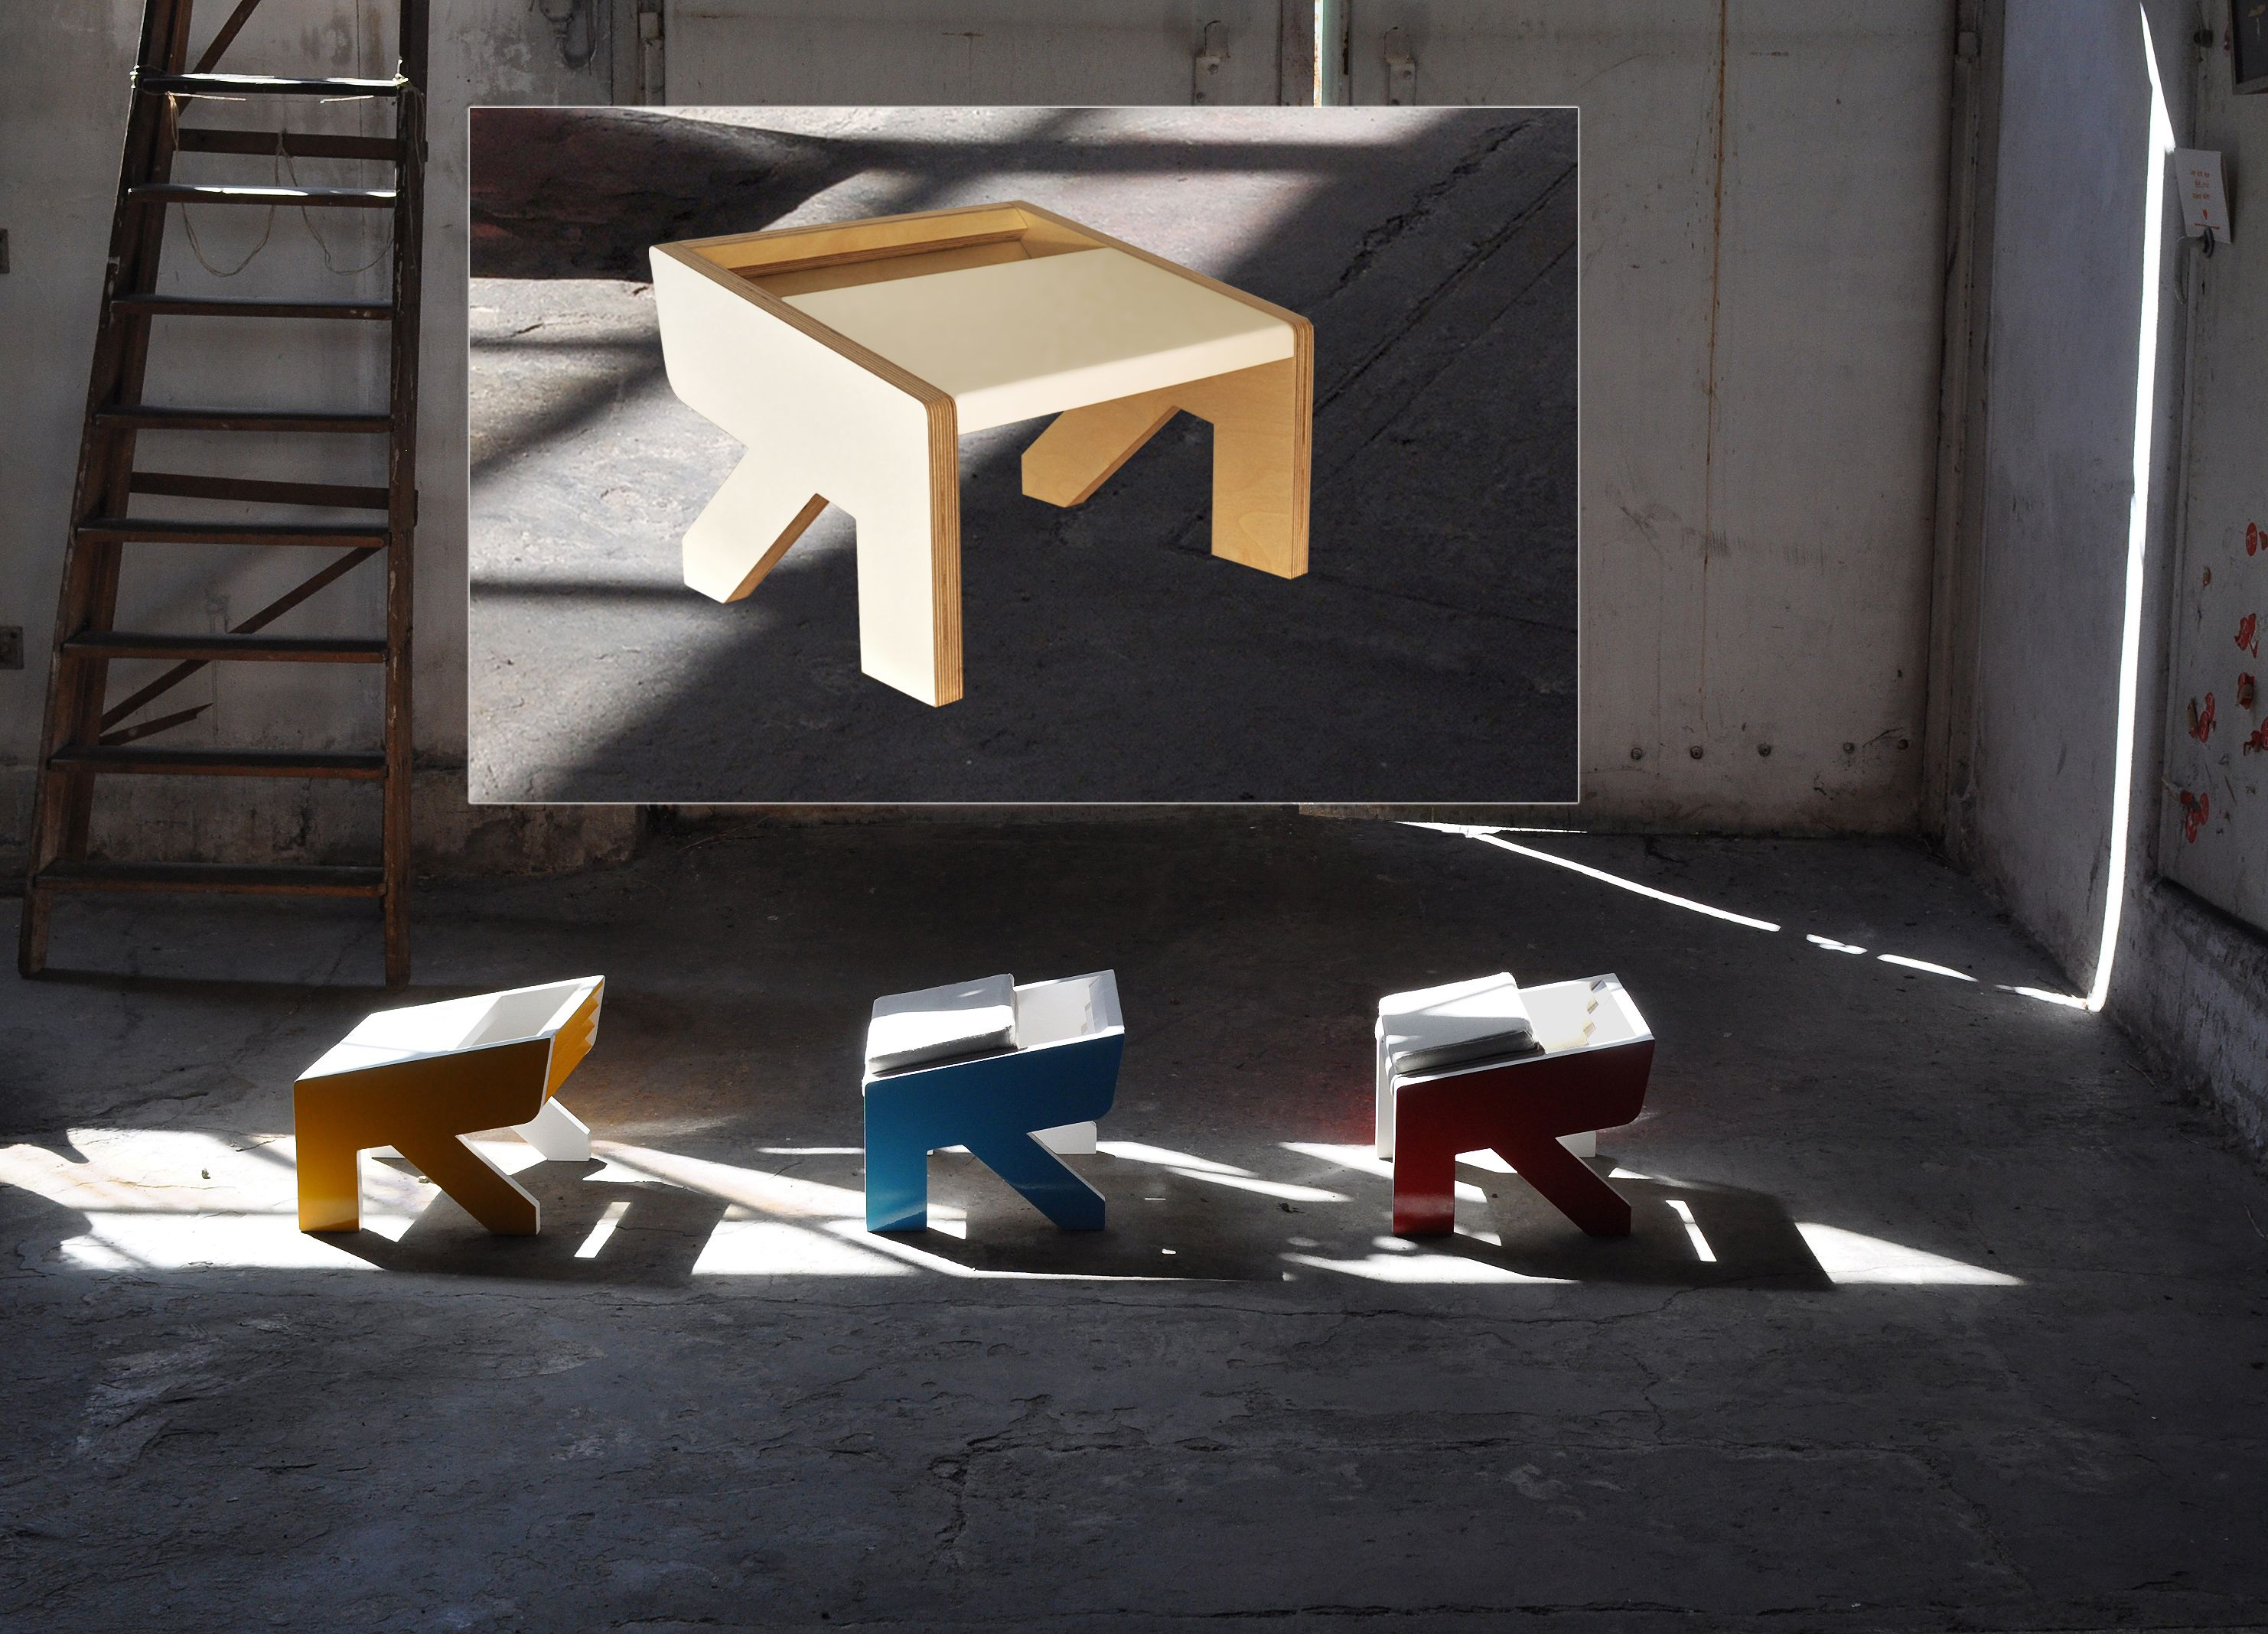 A little stool NoBigThink, catchy with nice colors for kids and grownups.